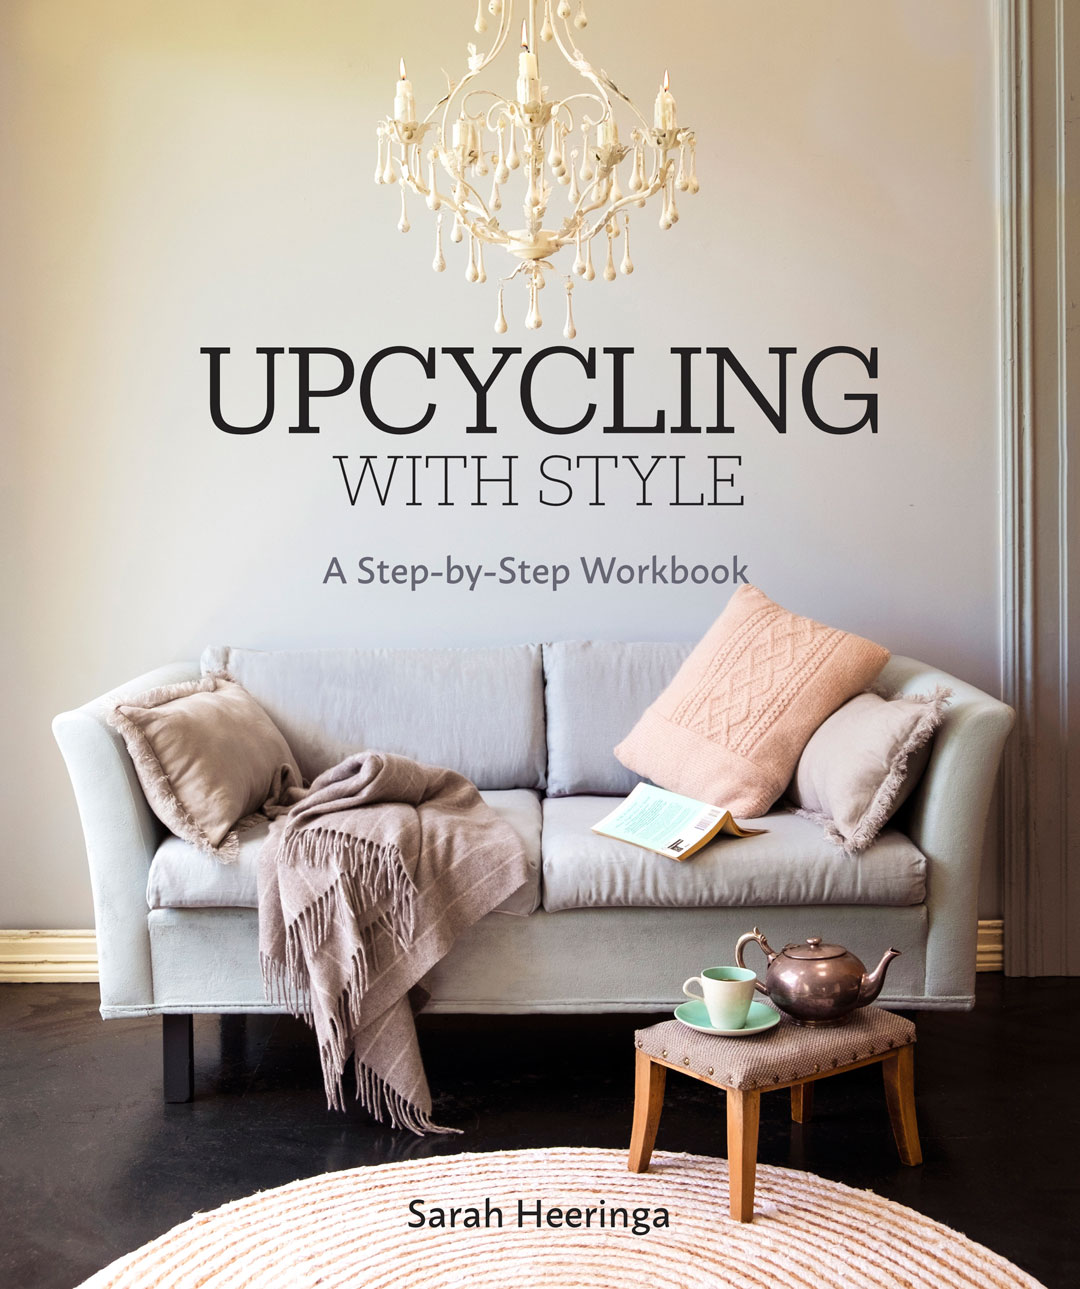 Upcycling with Style Sarah Heeringa, New Holland Publishers, RRP $35